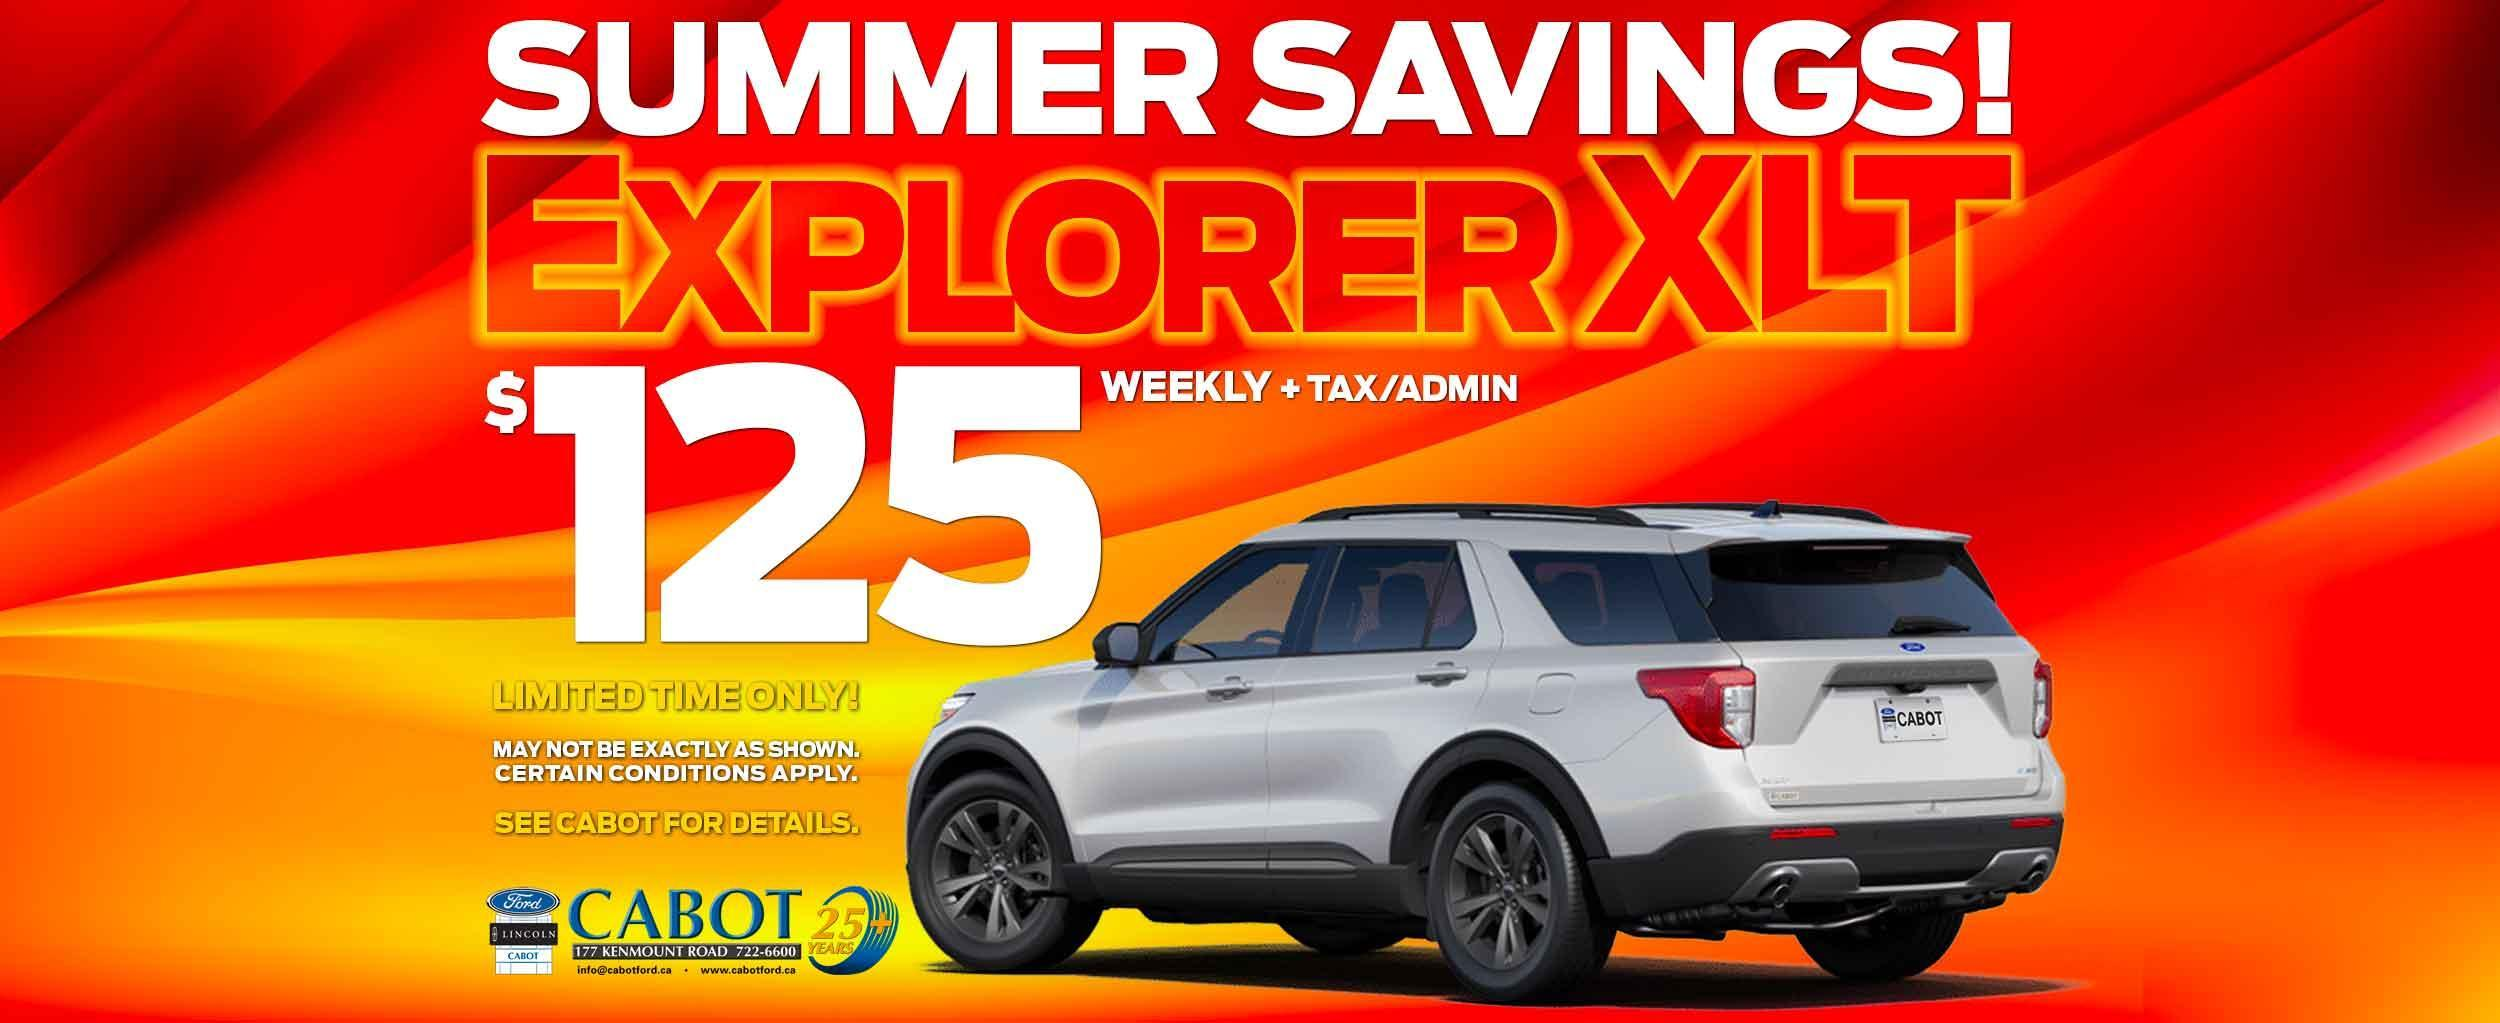 GET THE 2021 FORD EXPLORER XLT FOR JUST $125 WEEKLY + TAX/ADMIN!